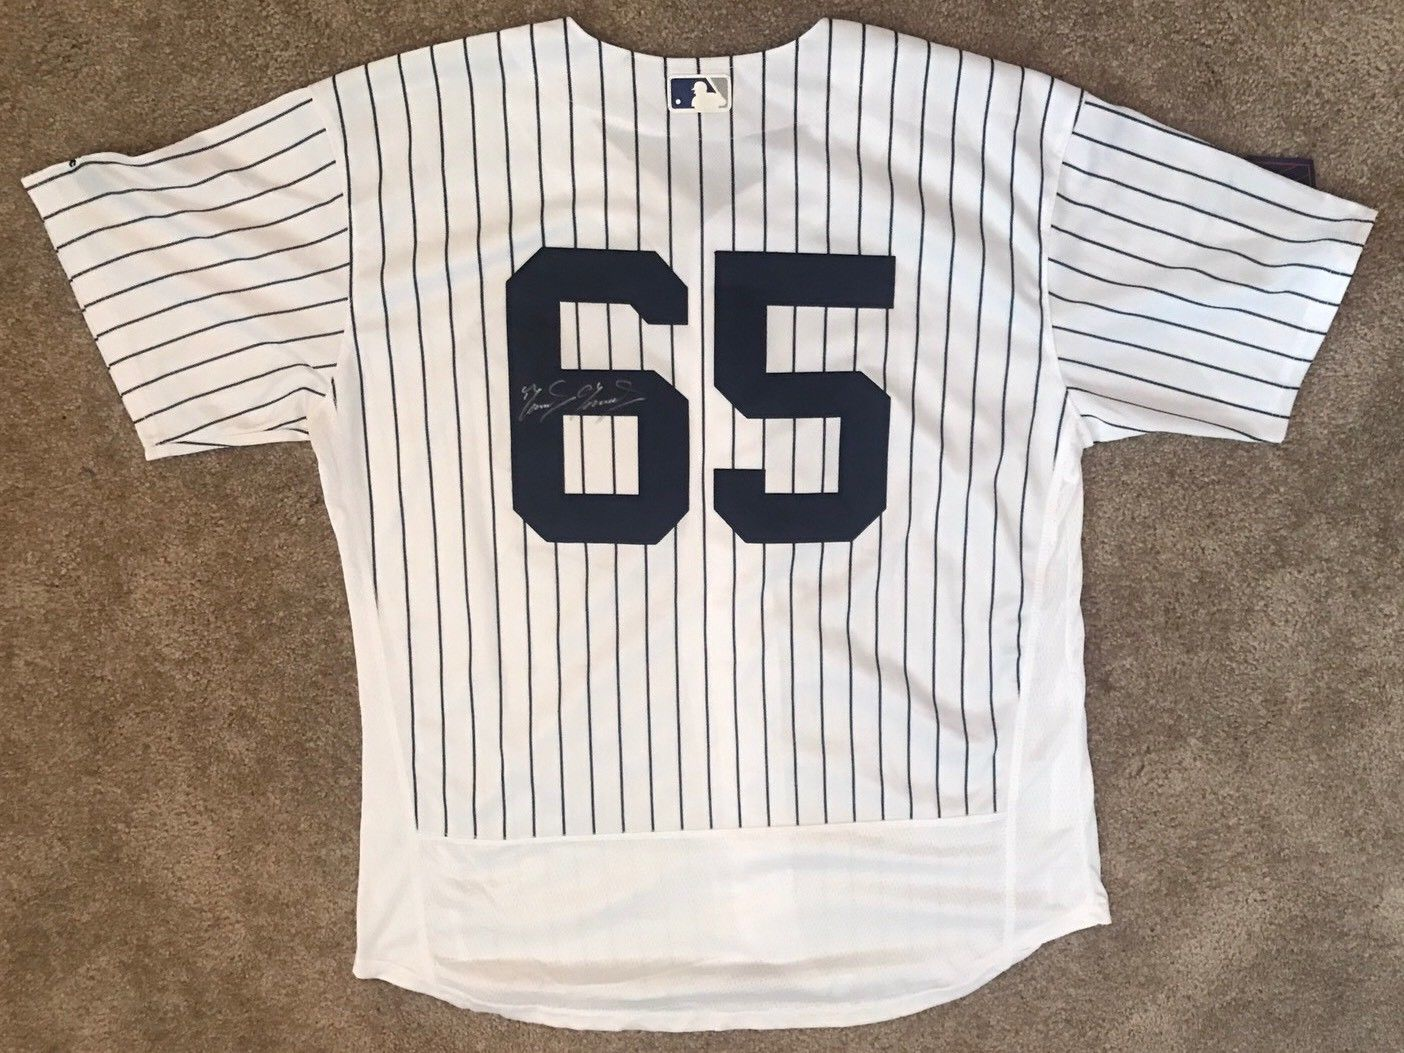 new concept 9cc25 a087c Domingo German Signed New York Yankees Jersey - Future Phenom